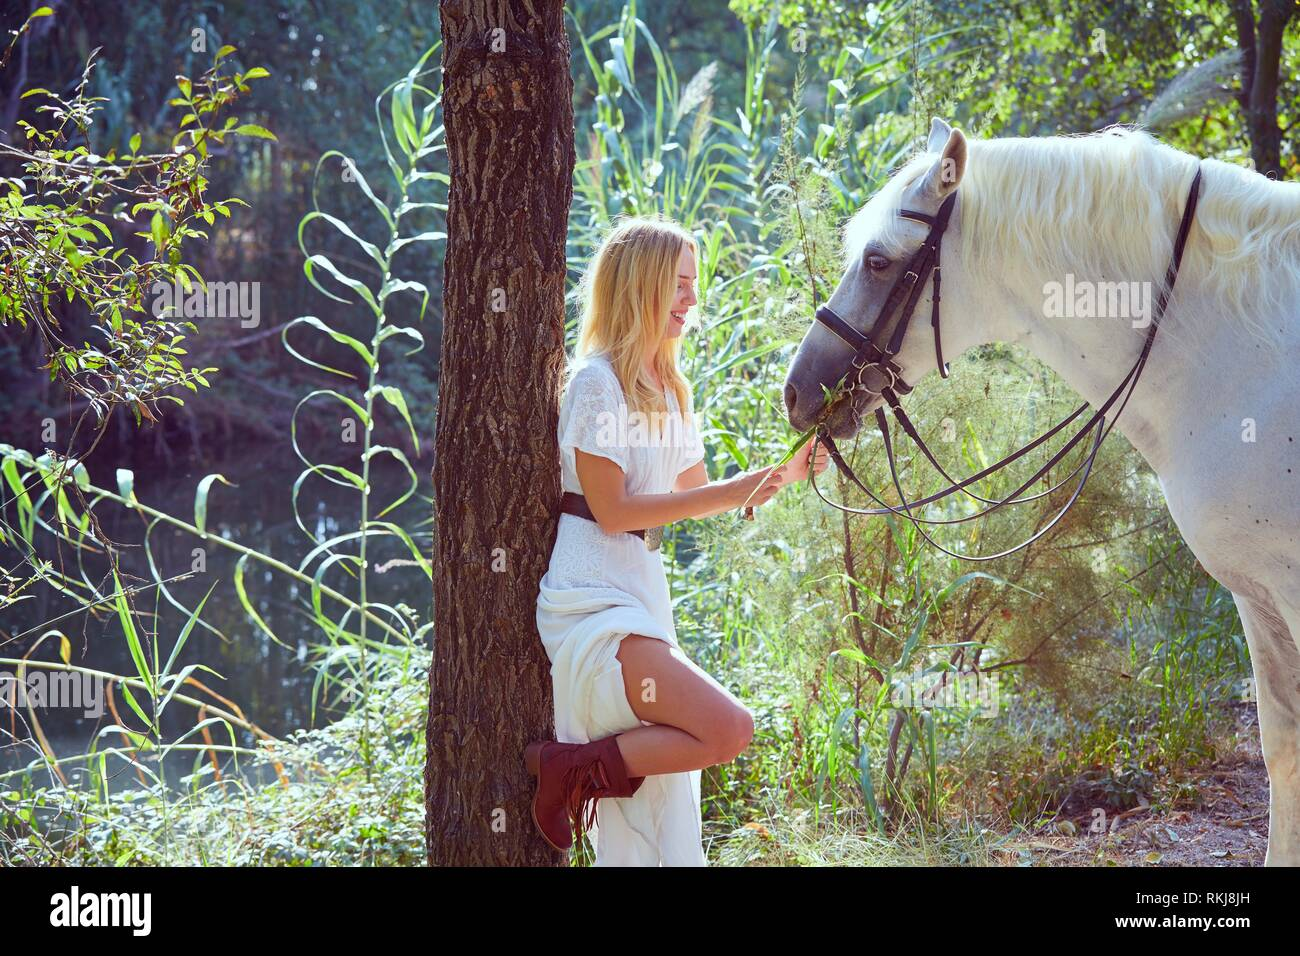 Blond girl feed grass to her white horse in a magic light forest near river. Stock Photo